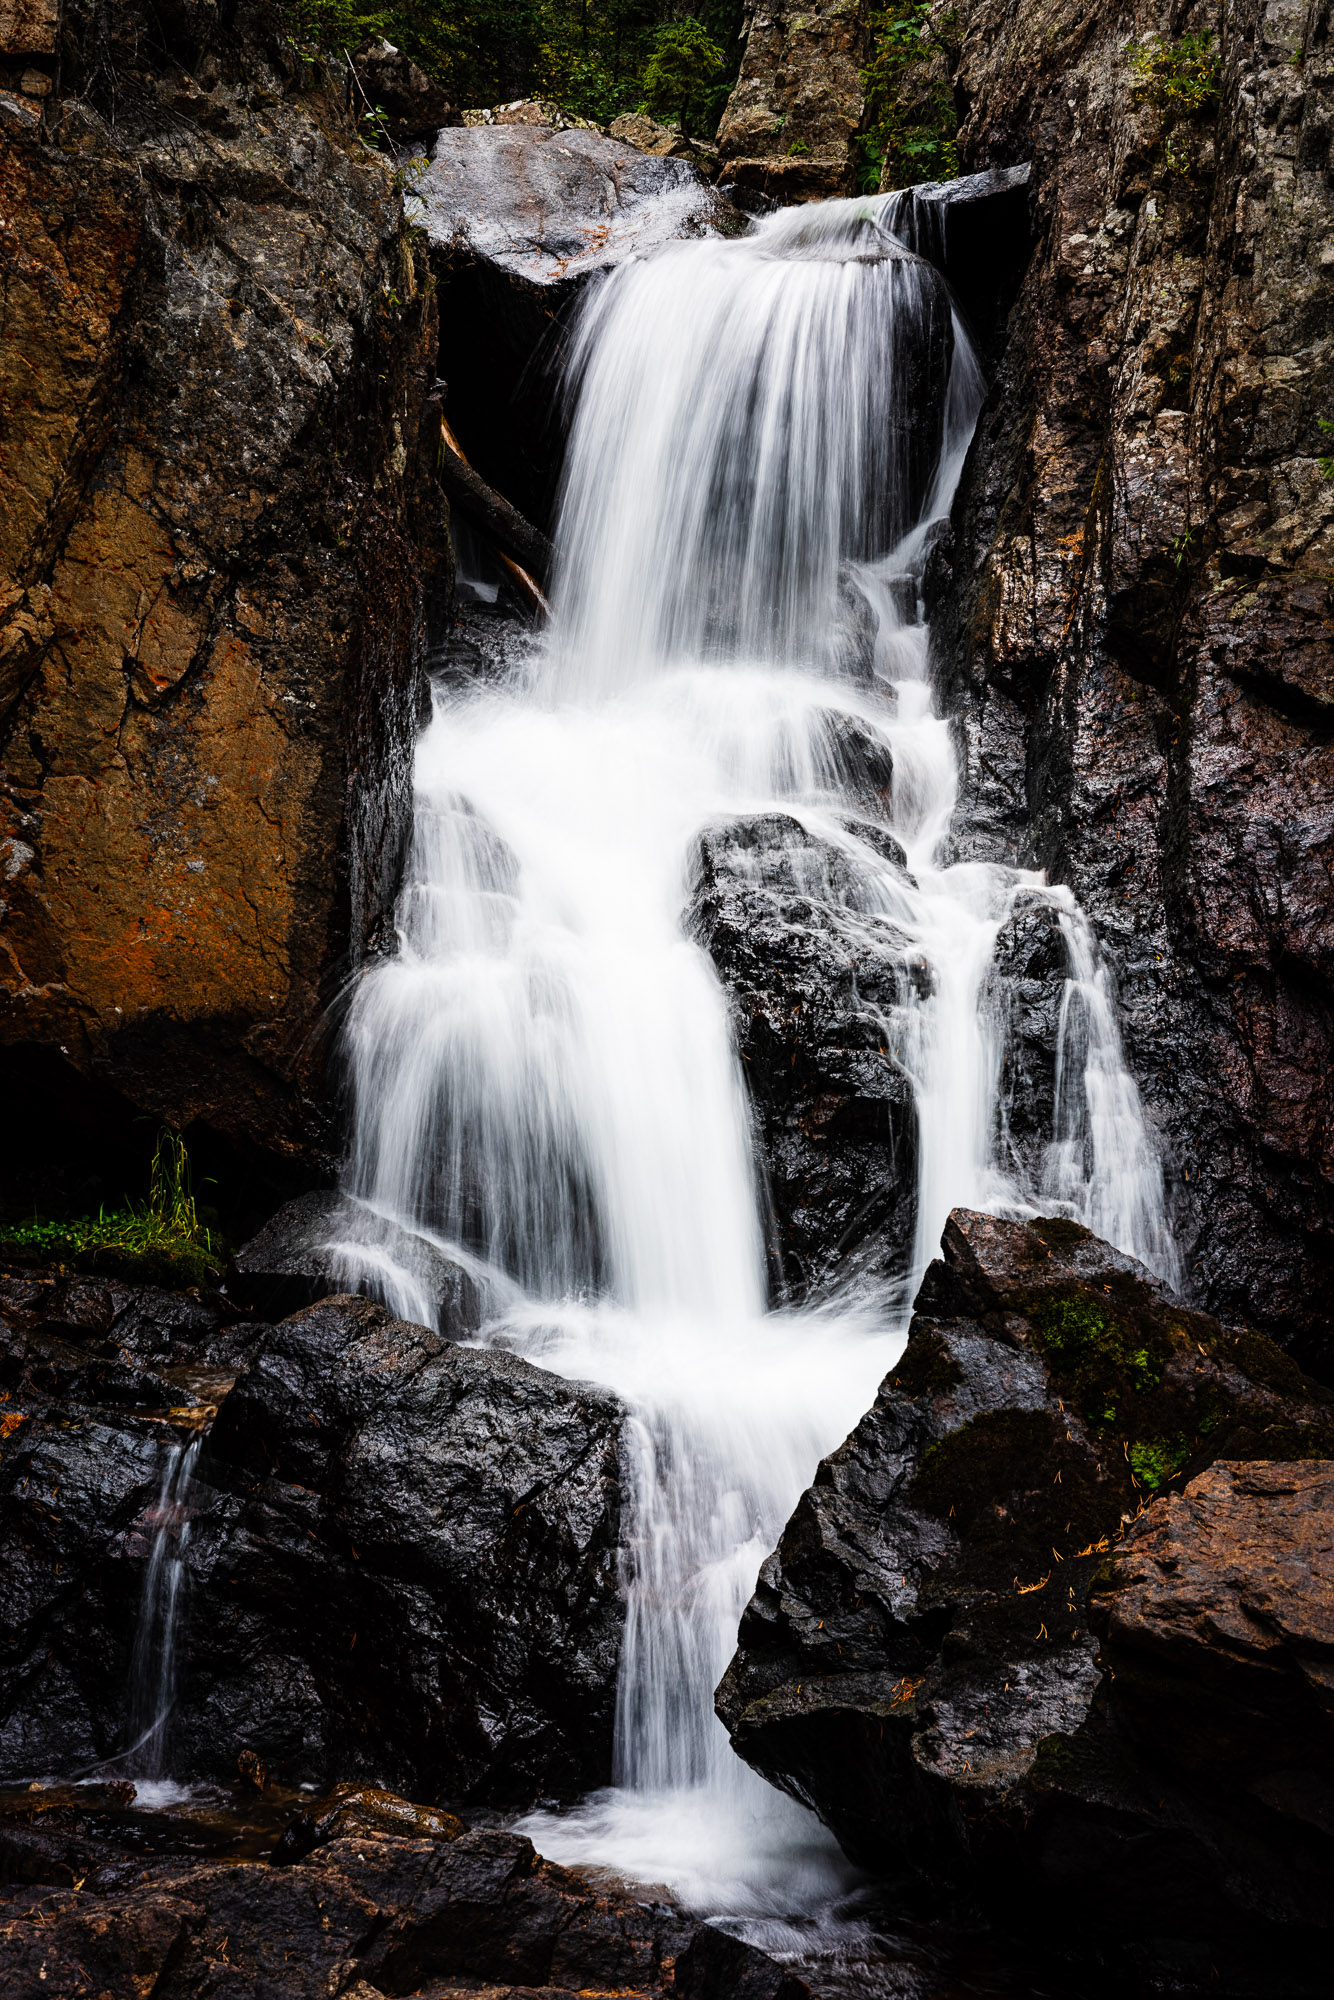 - color edit of waterfall in indian peaks wilderness with much higher contrast - notice the rocks are much darker with some shadows now lacking definition and the water is a bit lighter - losing some of its definition